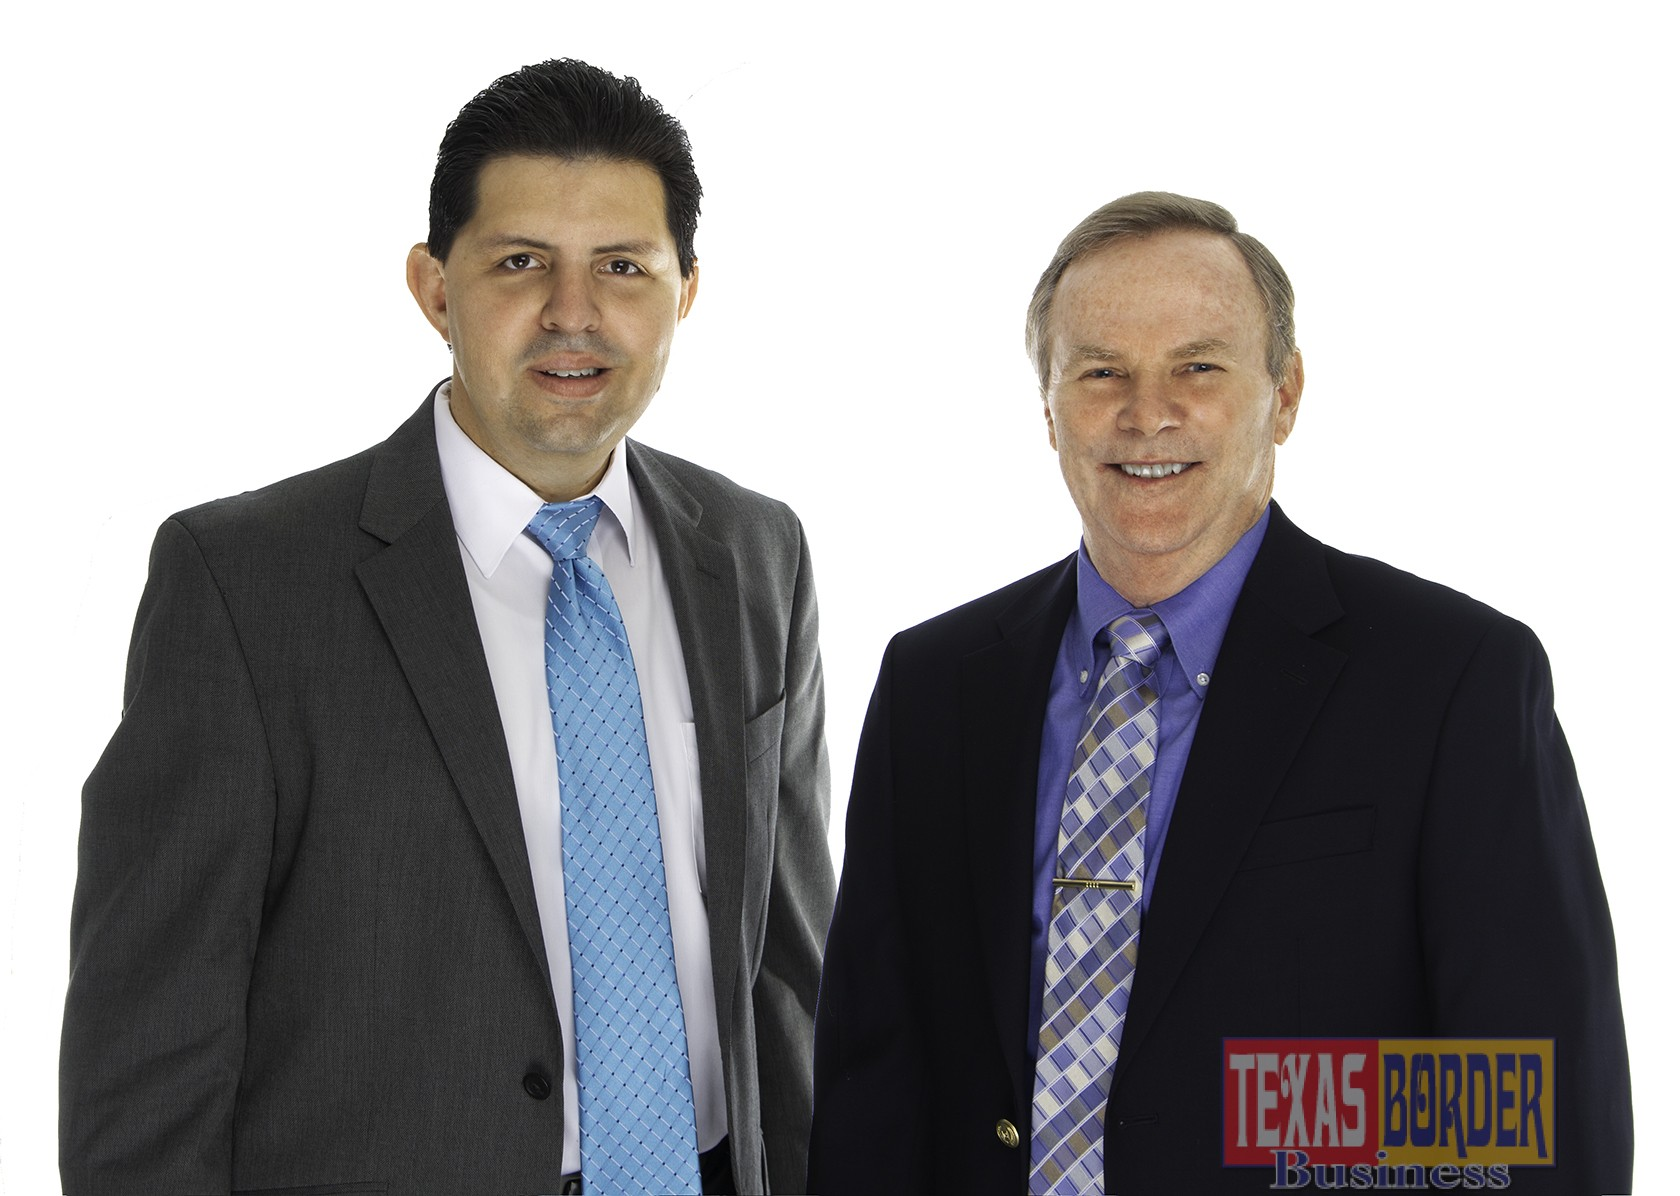 Pictured above, is Luis Cantu, Vice President for International Business for the McAllen Chamber of Commerce and City of McAllen Mayor, Jim Daring.